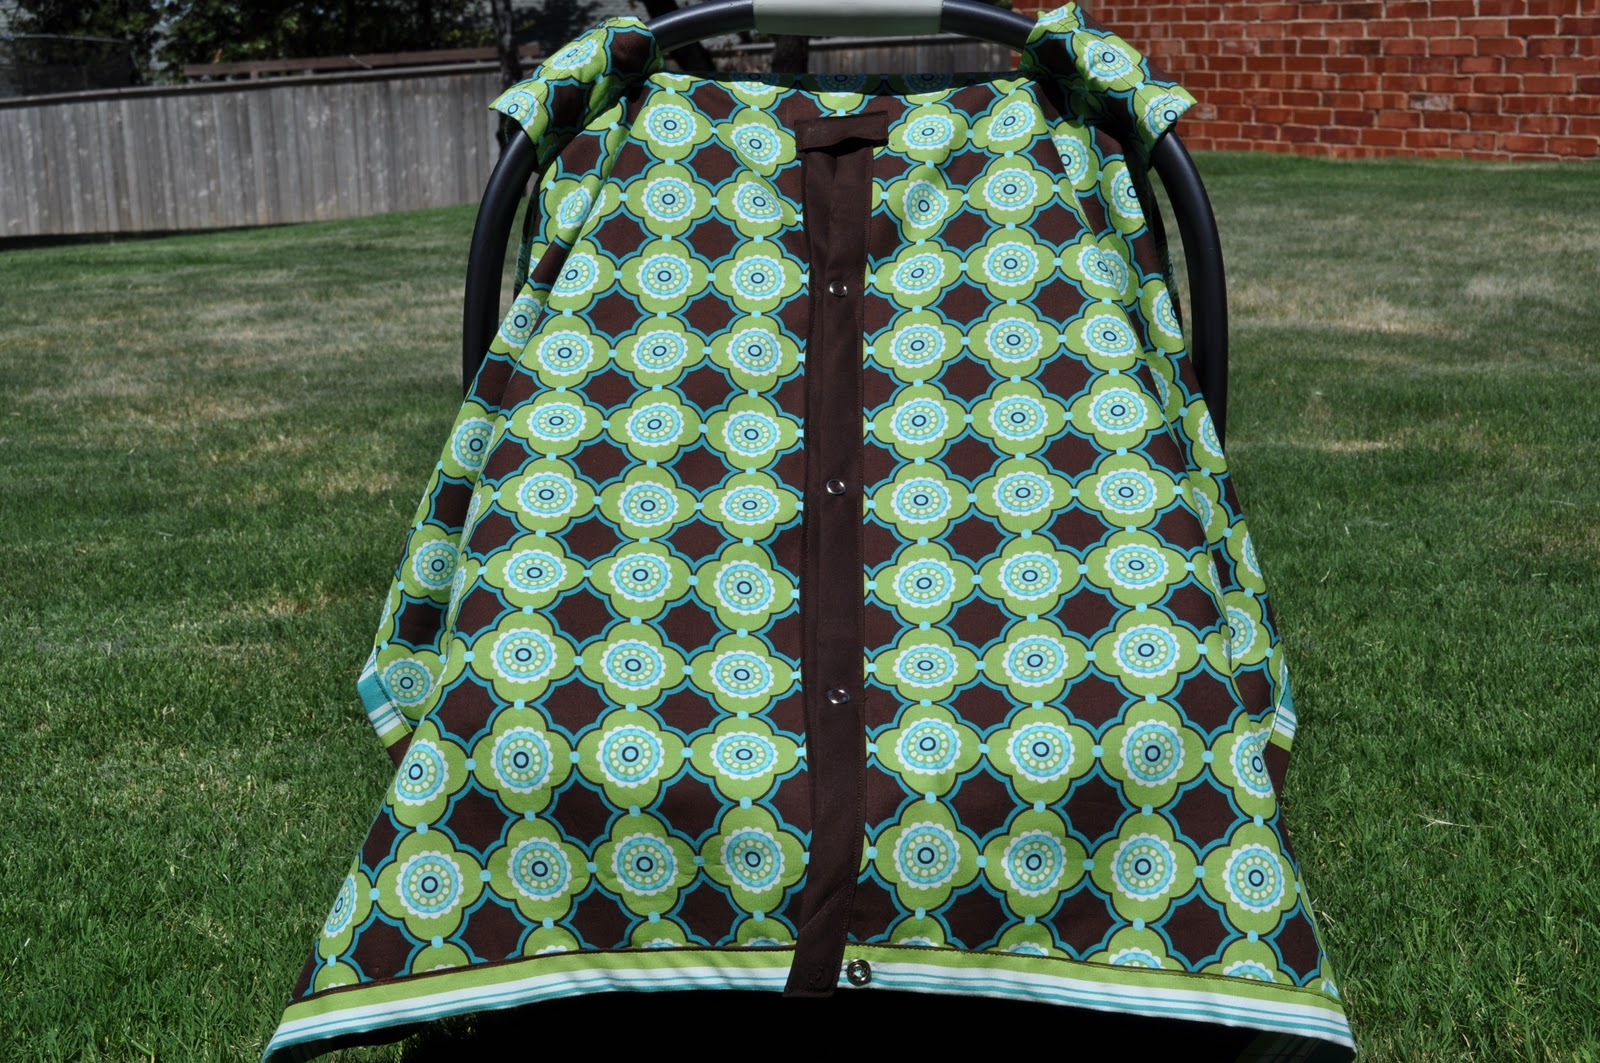 Elastic to the back to keep it from blowing up and wind from getting to her precious little cheeks. & Kalicocrafts: Paparazzi Shade (Car Seat Canopy Cover)